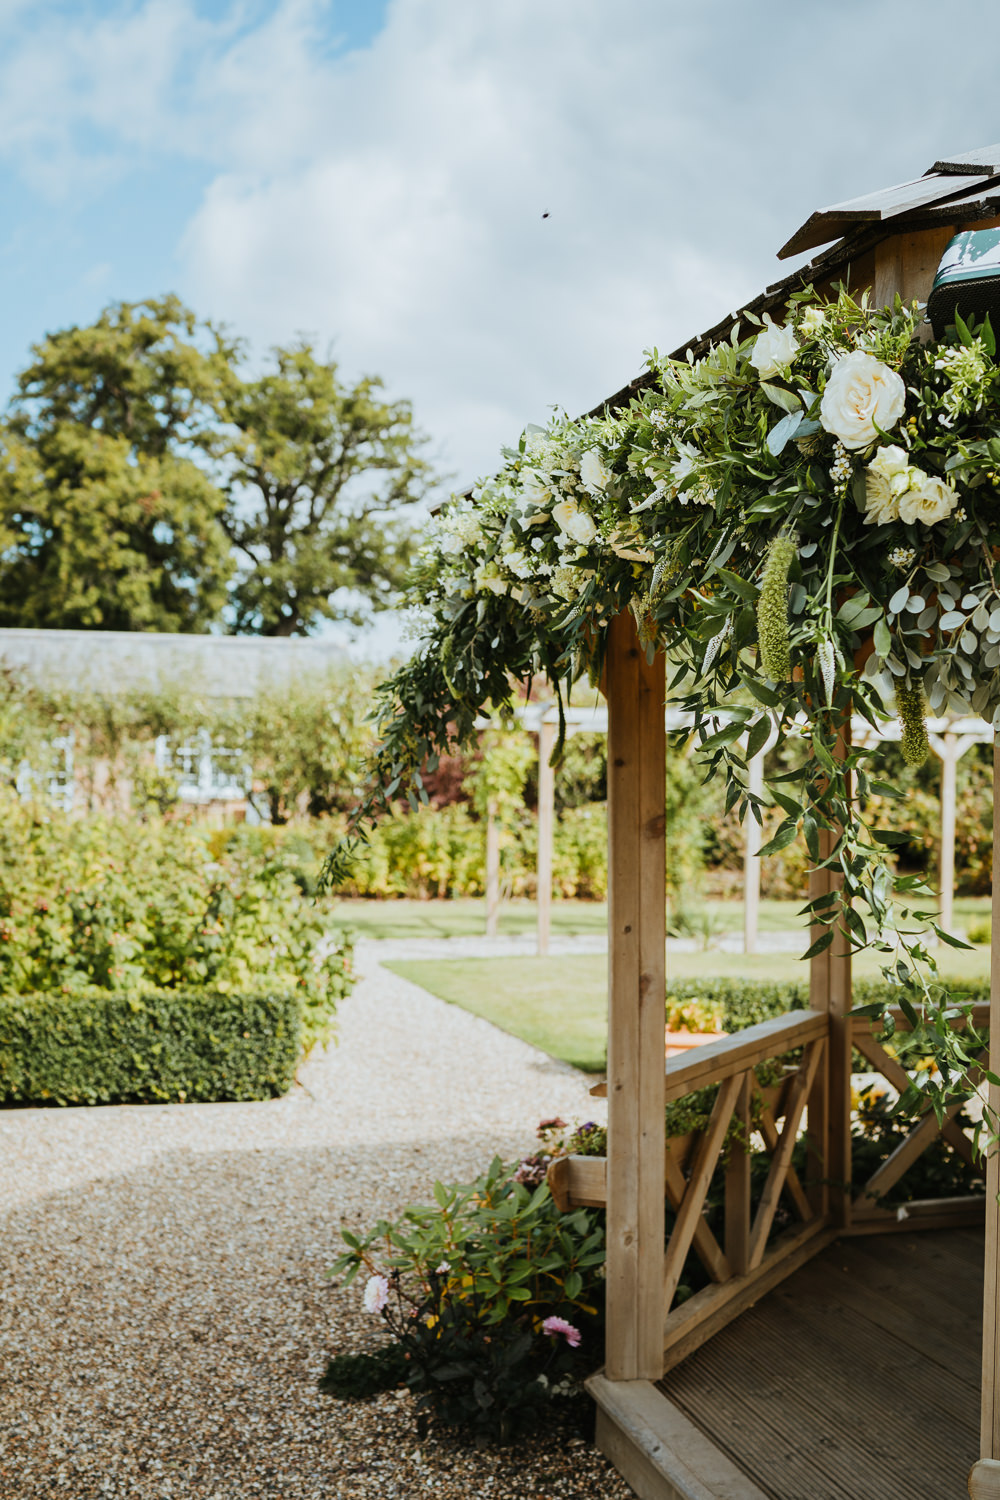 Secret Garden Kent Outdoor Ceremony Gazeebo Pagoda Flowers Greenery Foliage Micro Wedding Nicola Dawson Photography